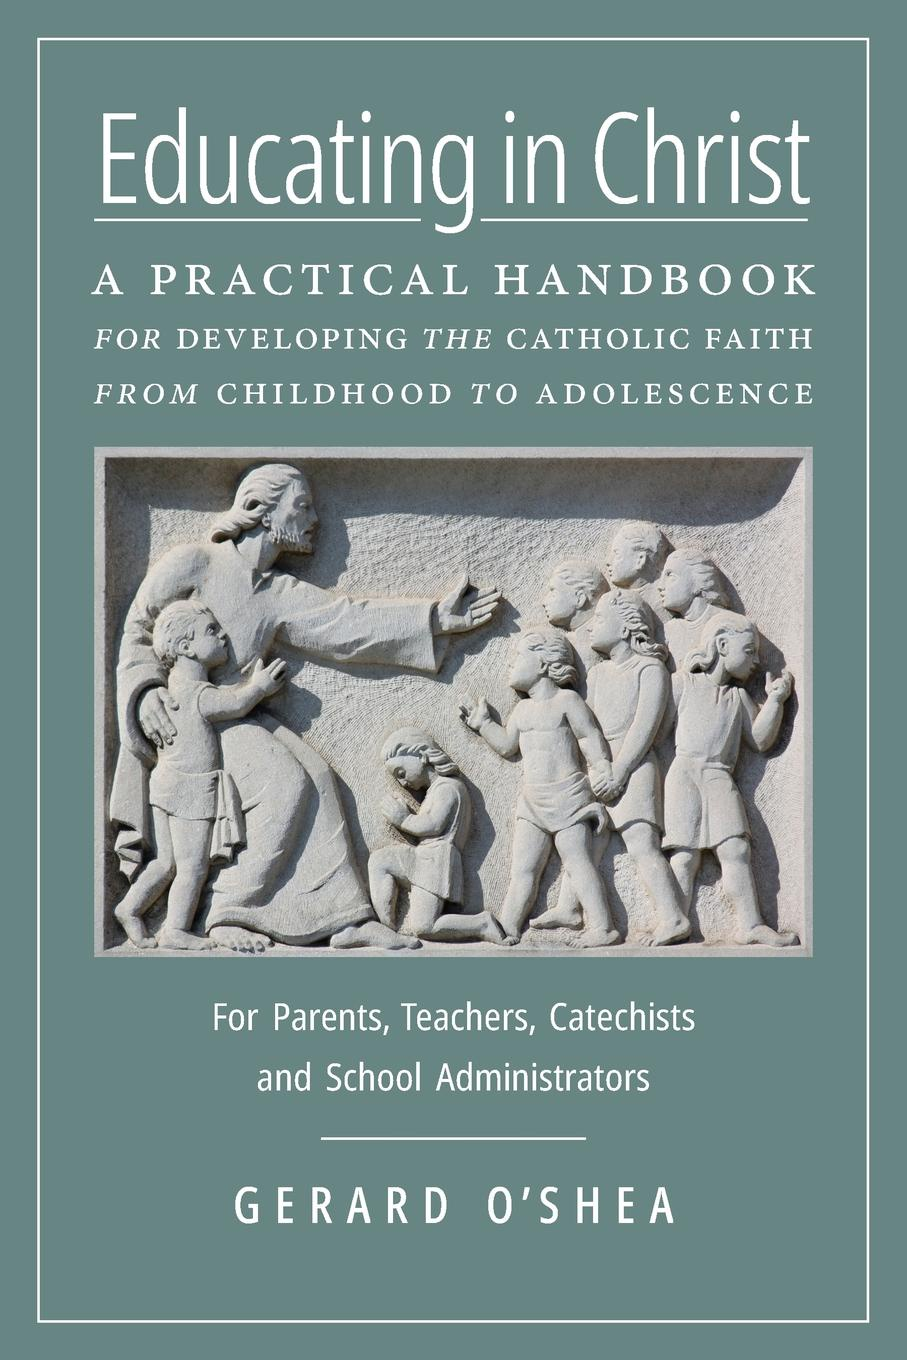 Gerard O'Shea Educating in Christ. A Practical Handbook for Developing the Catholic Faith from Childhood to Adolescence -- For Parents, Teachers, Catechists and School Administrators henry cruz faith in service developing credit unions in ecuador